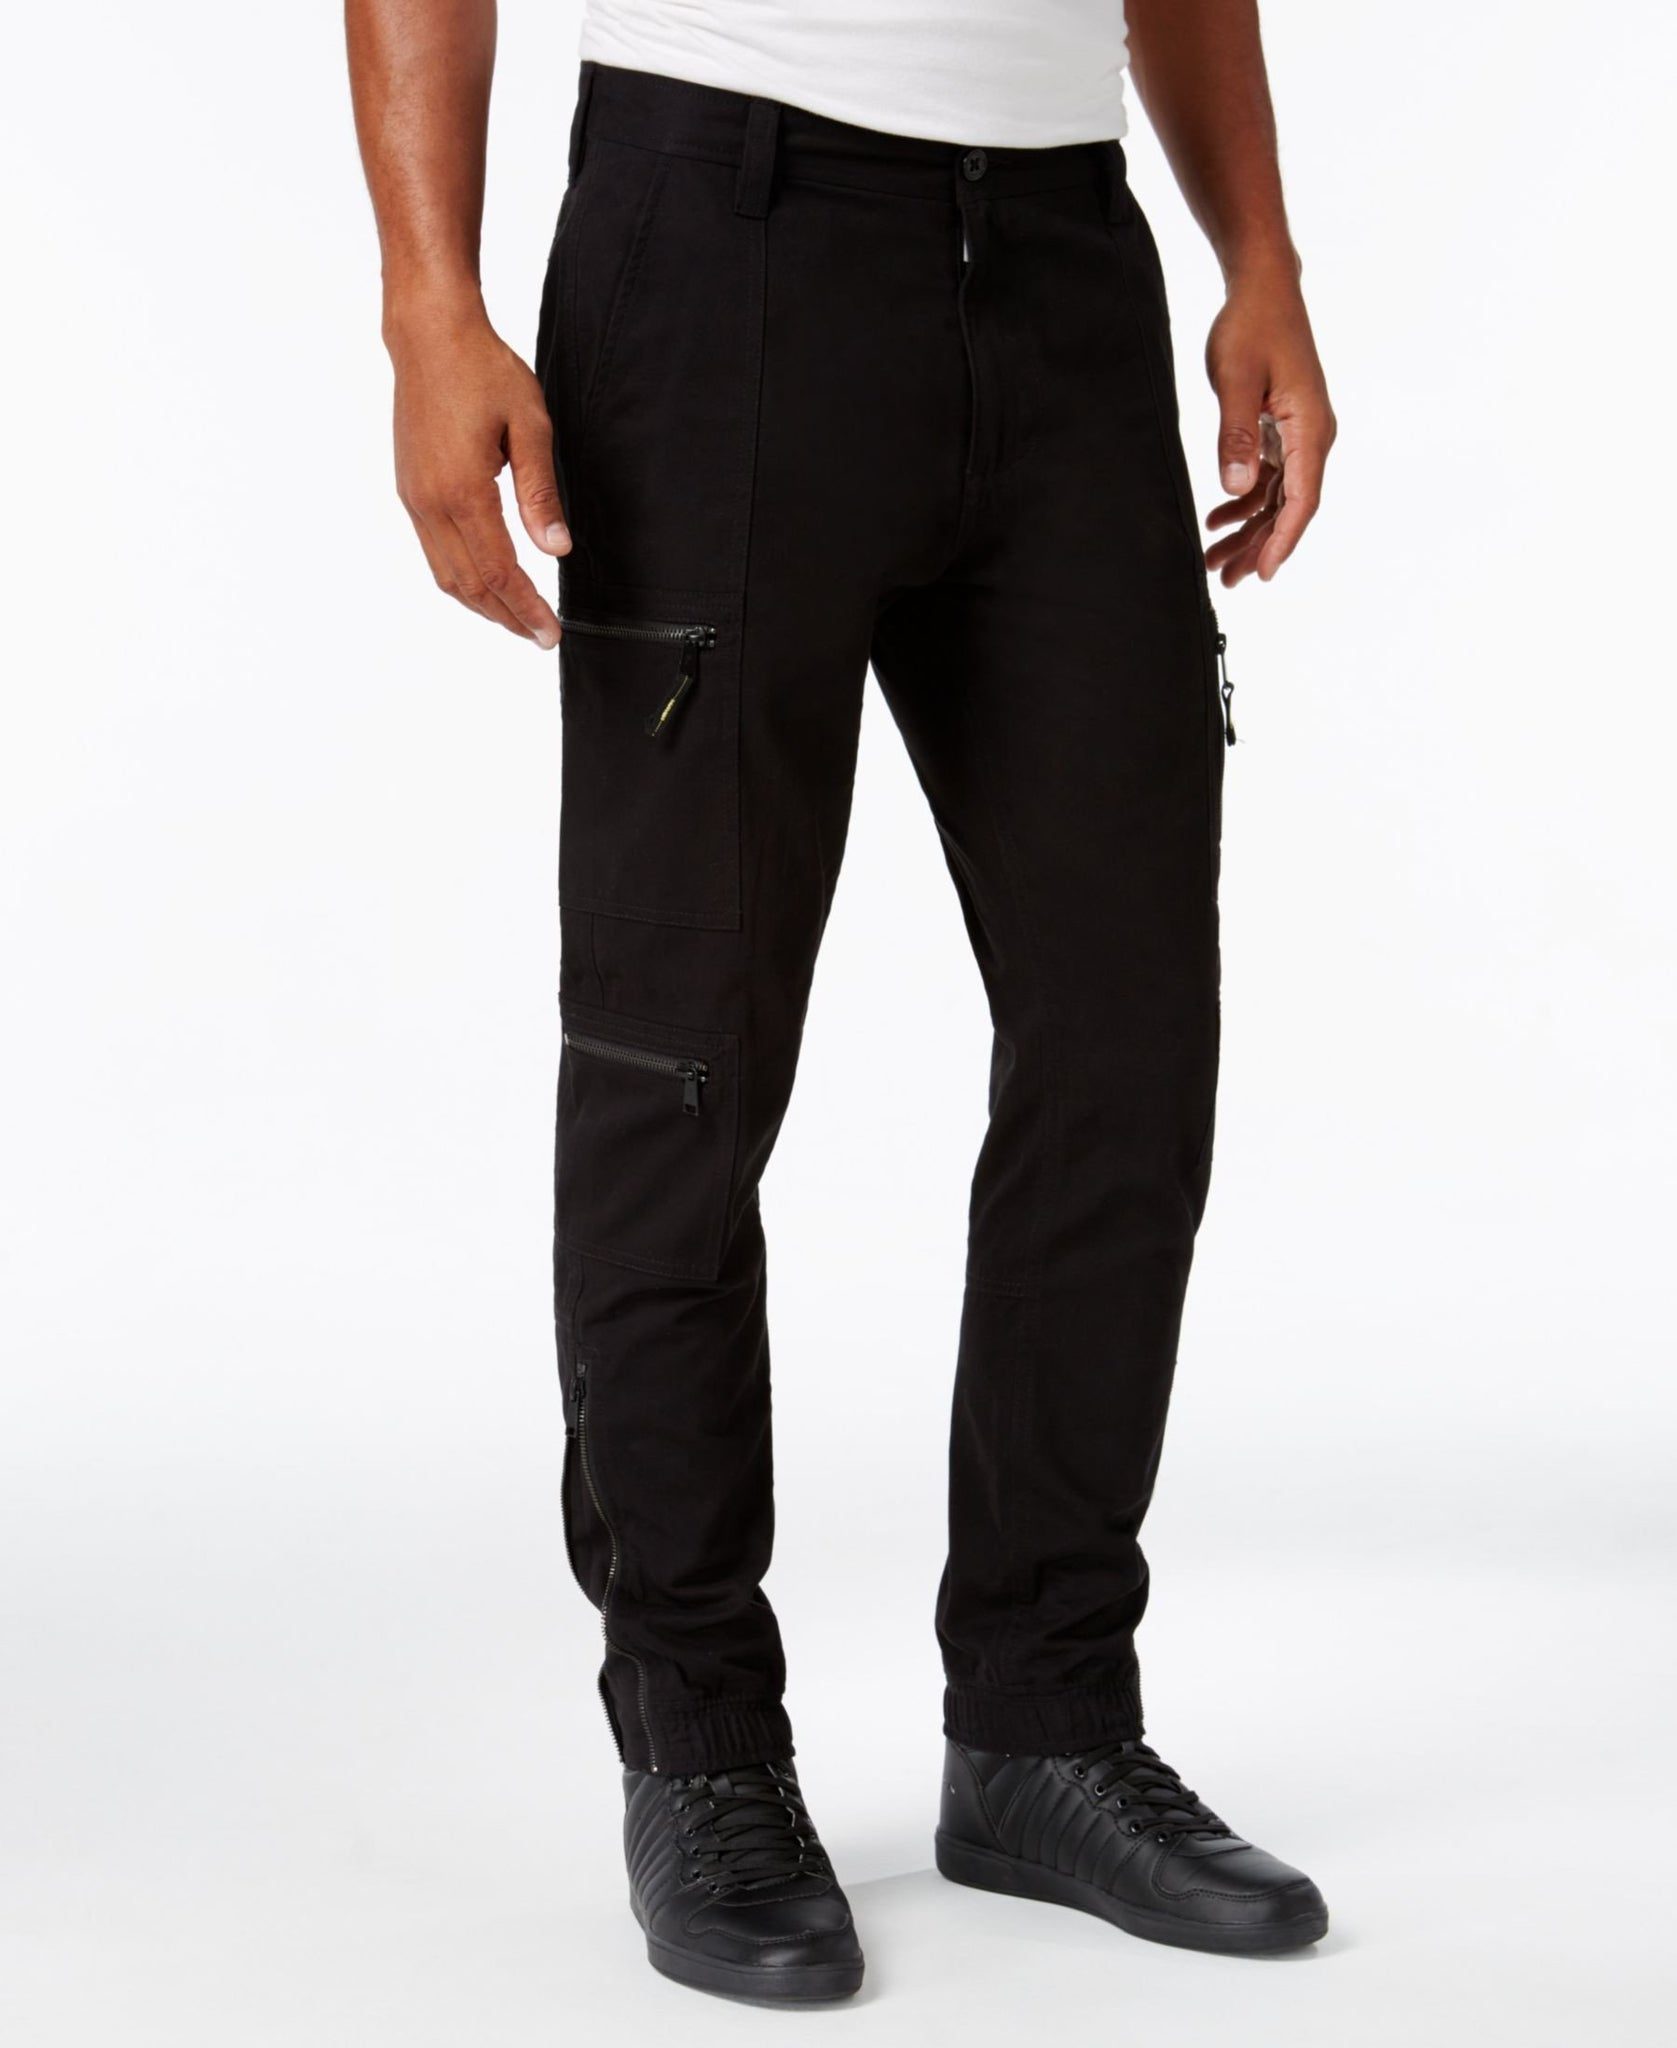 Sean John Black Zip-Flight Jogger Pant